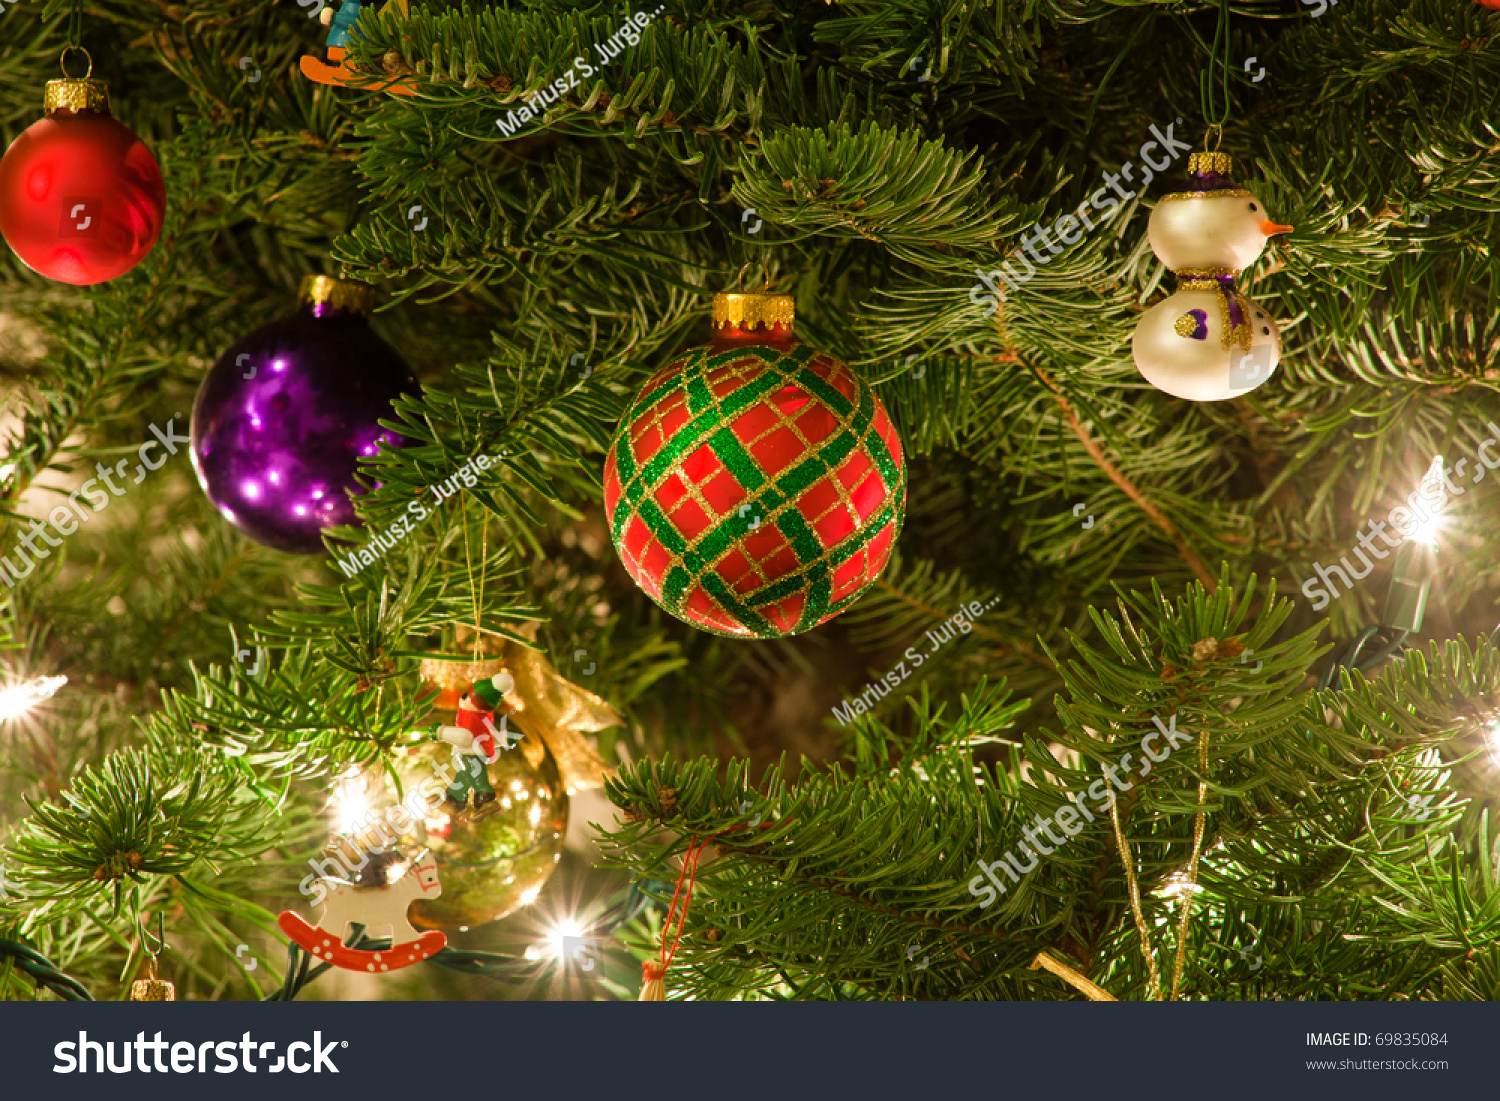 Christmas ornaments are decorations usually made of glass